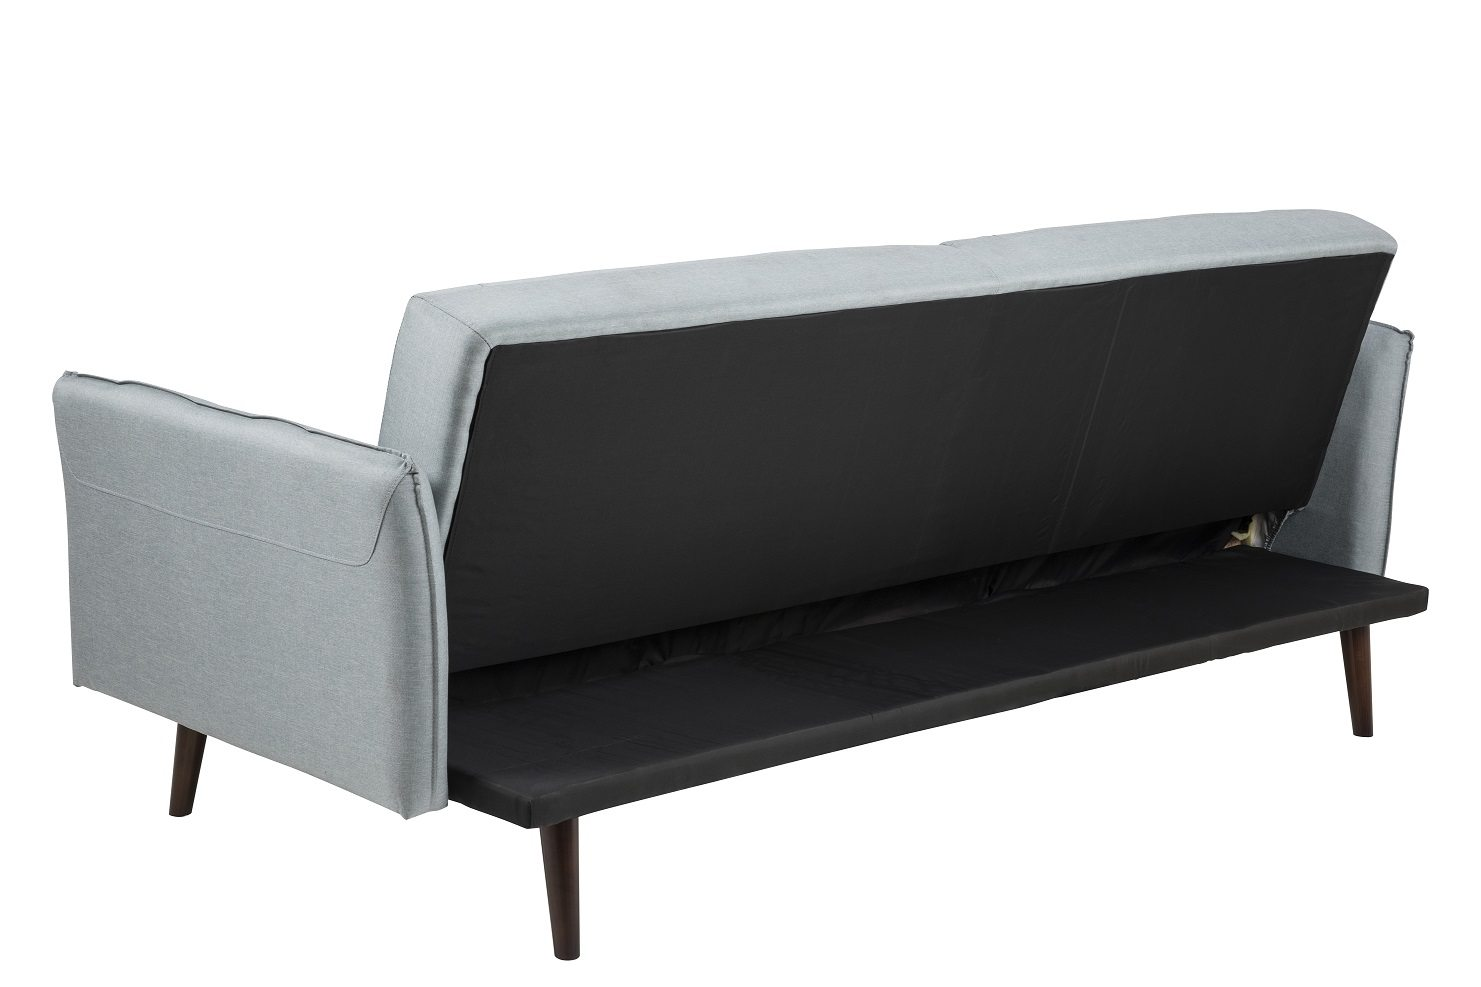 diano-sofa-bed-2